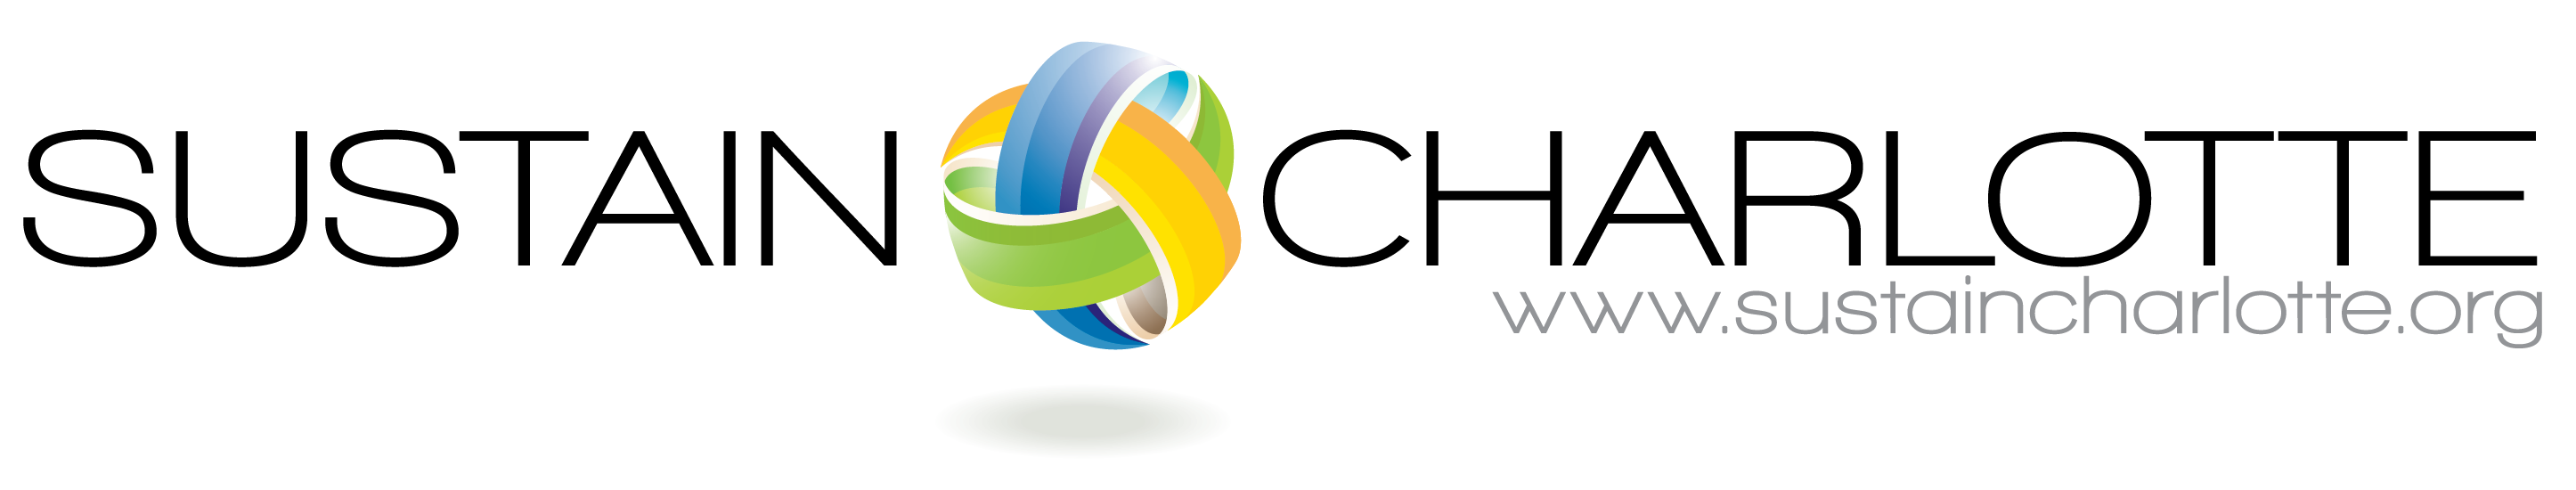 2Sustain_Charlotte_Logos_-_High_Res_(1)-01.png